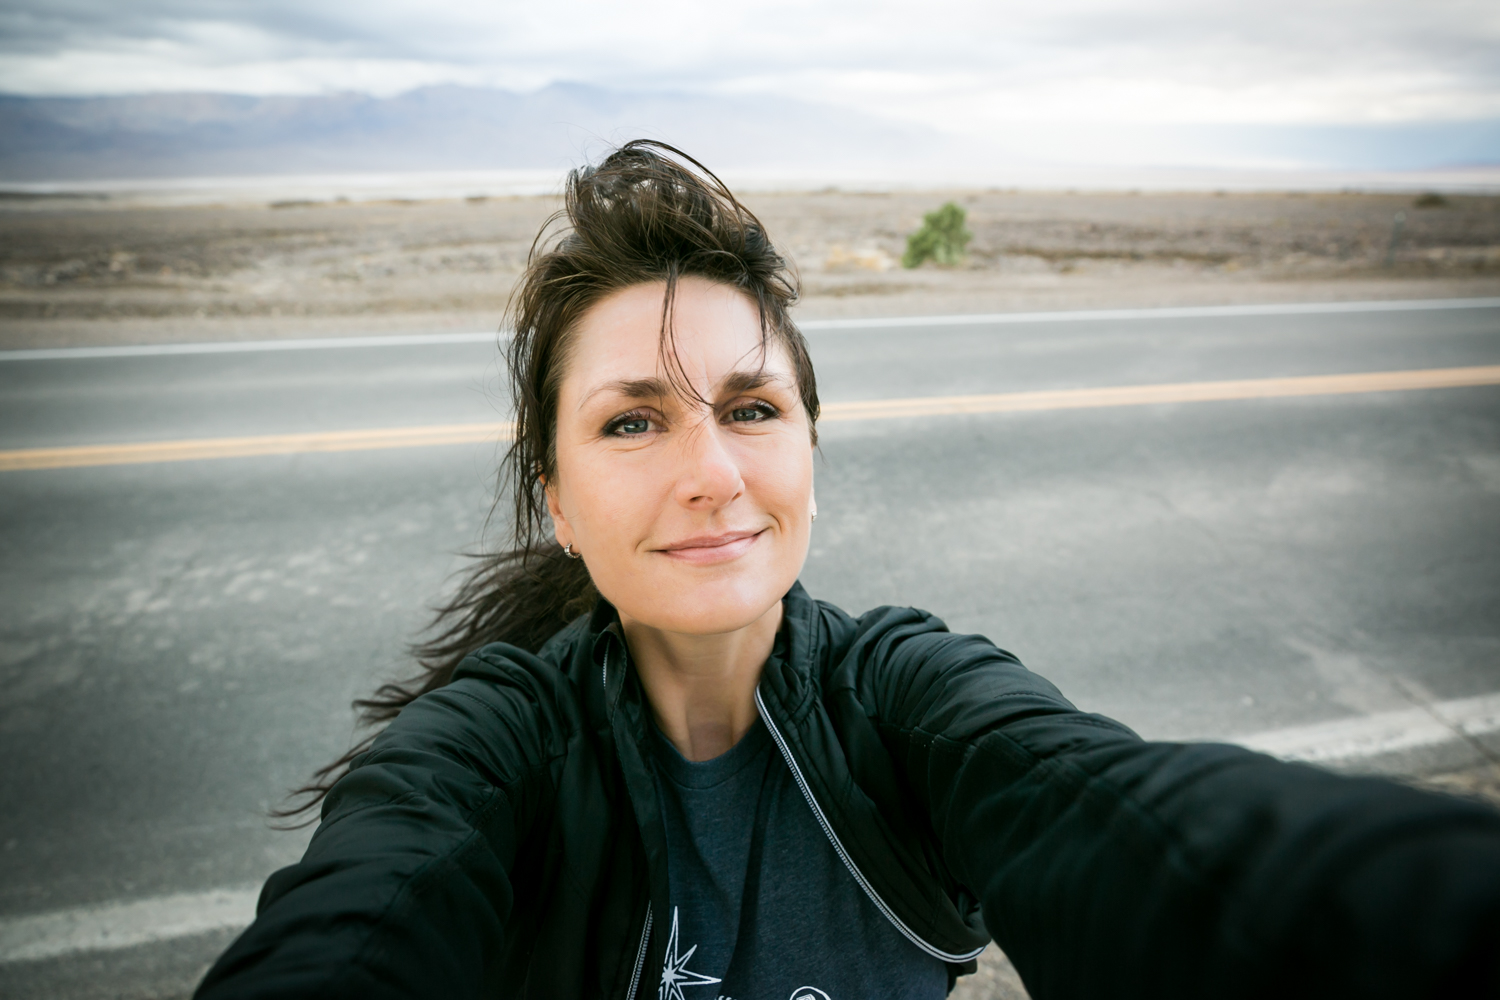 Portrait of NYC photojournalist and travel photographer, Kelly Williams